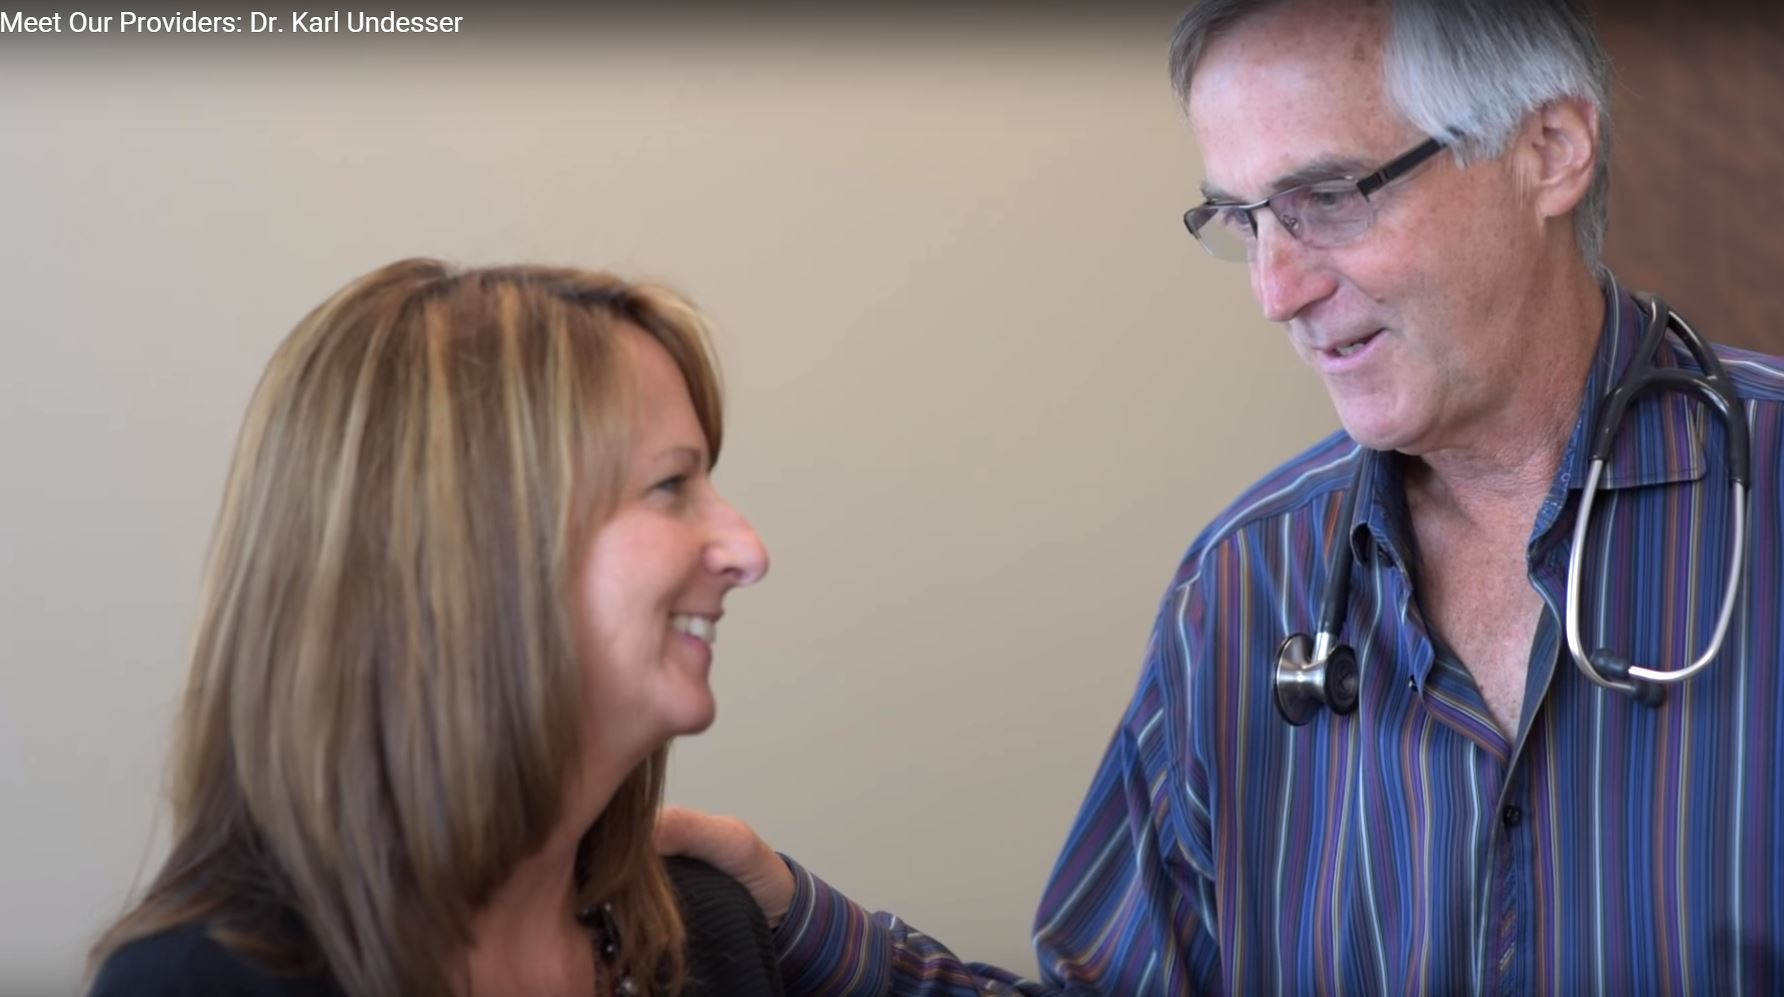 Dr. Undesser talks about his practice